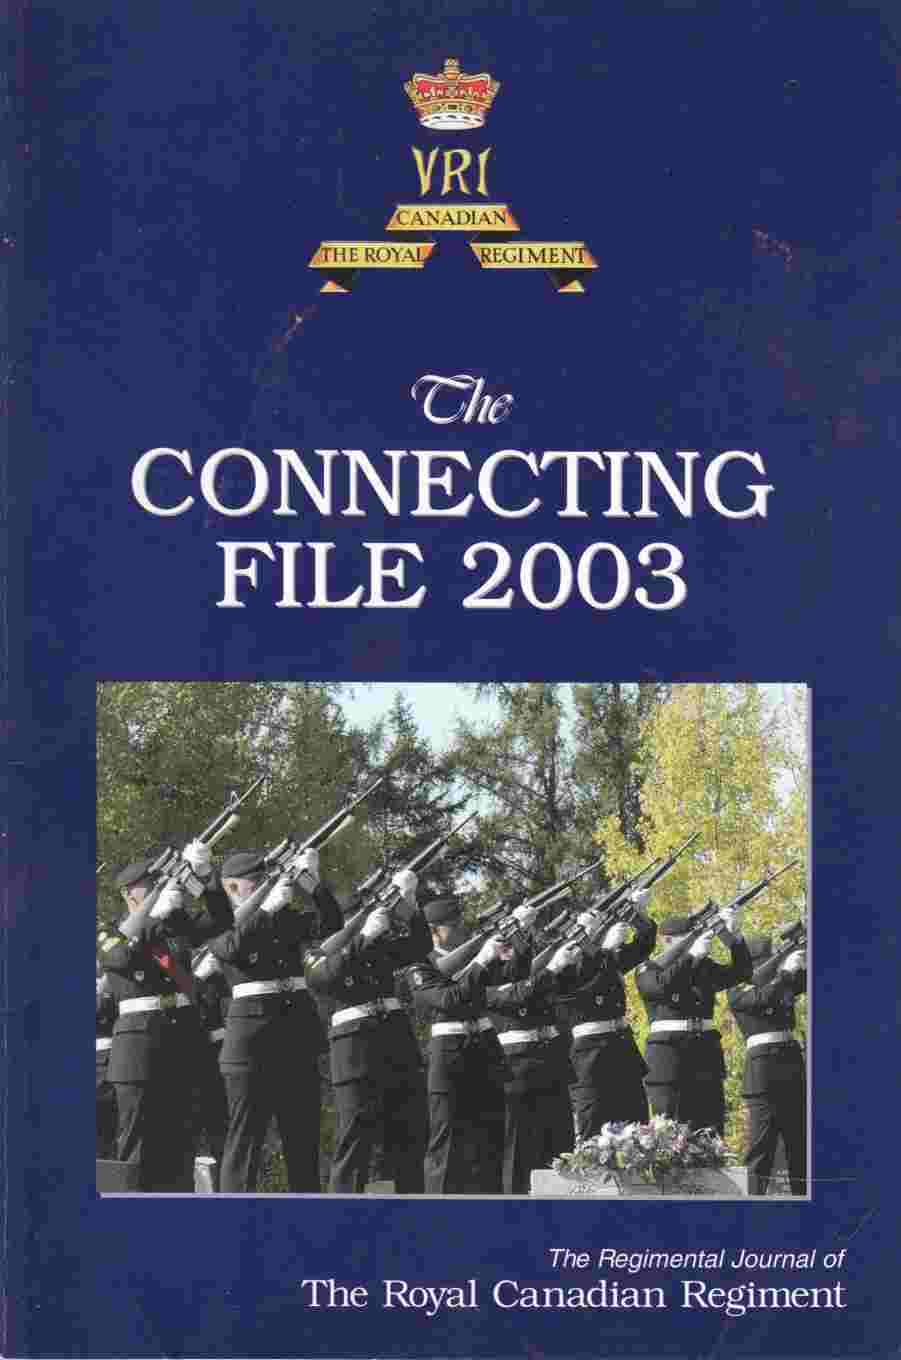 Image for The Connecting File 2003 - April 2004 Issue 85